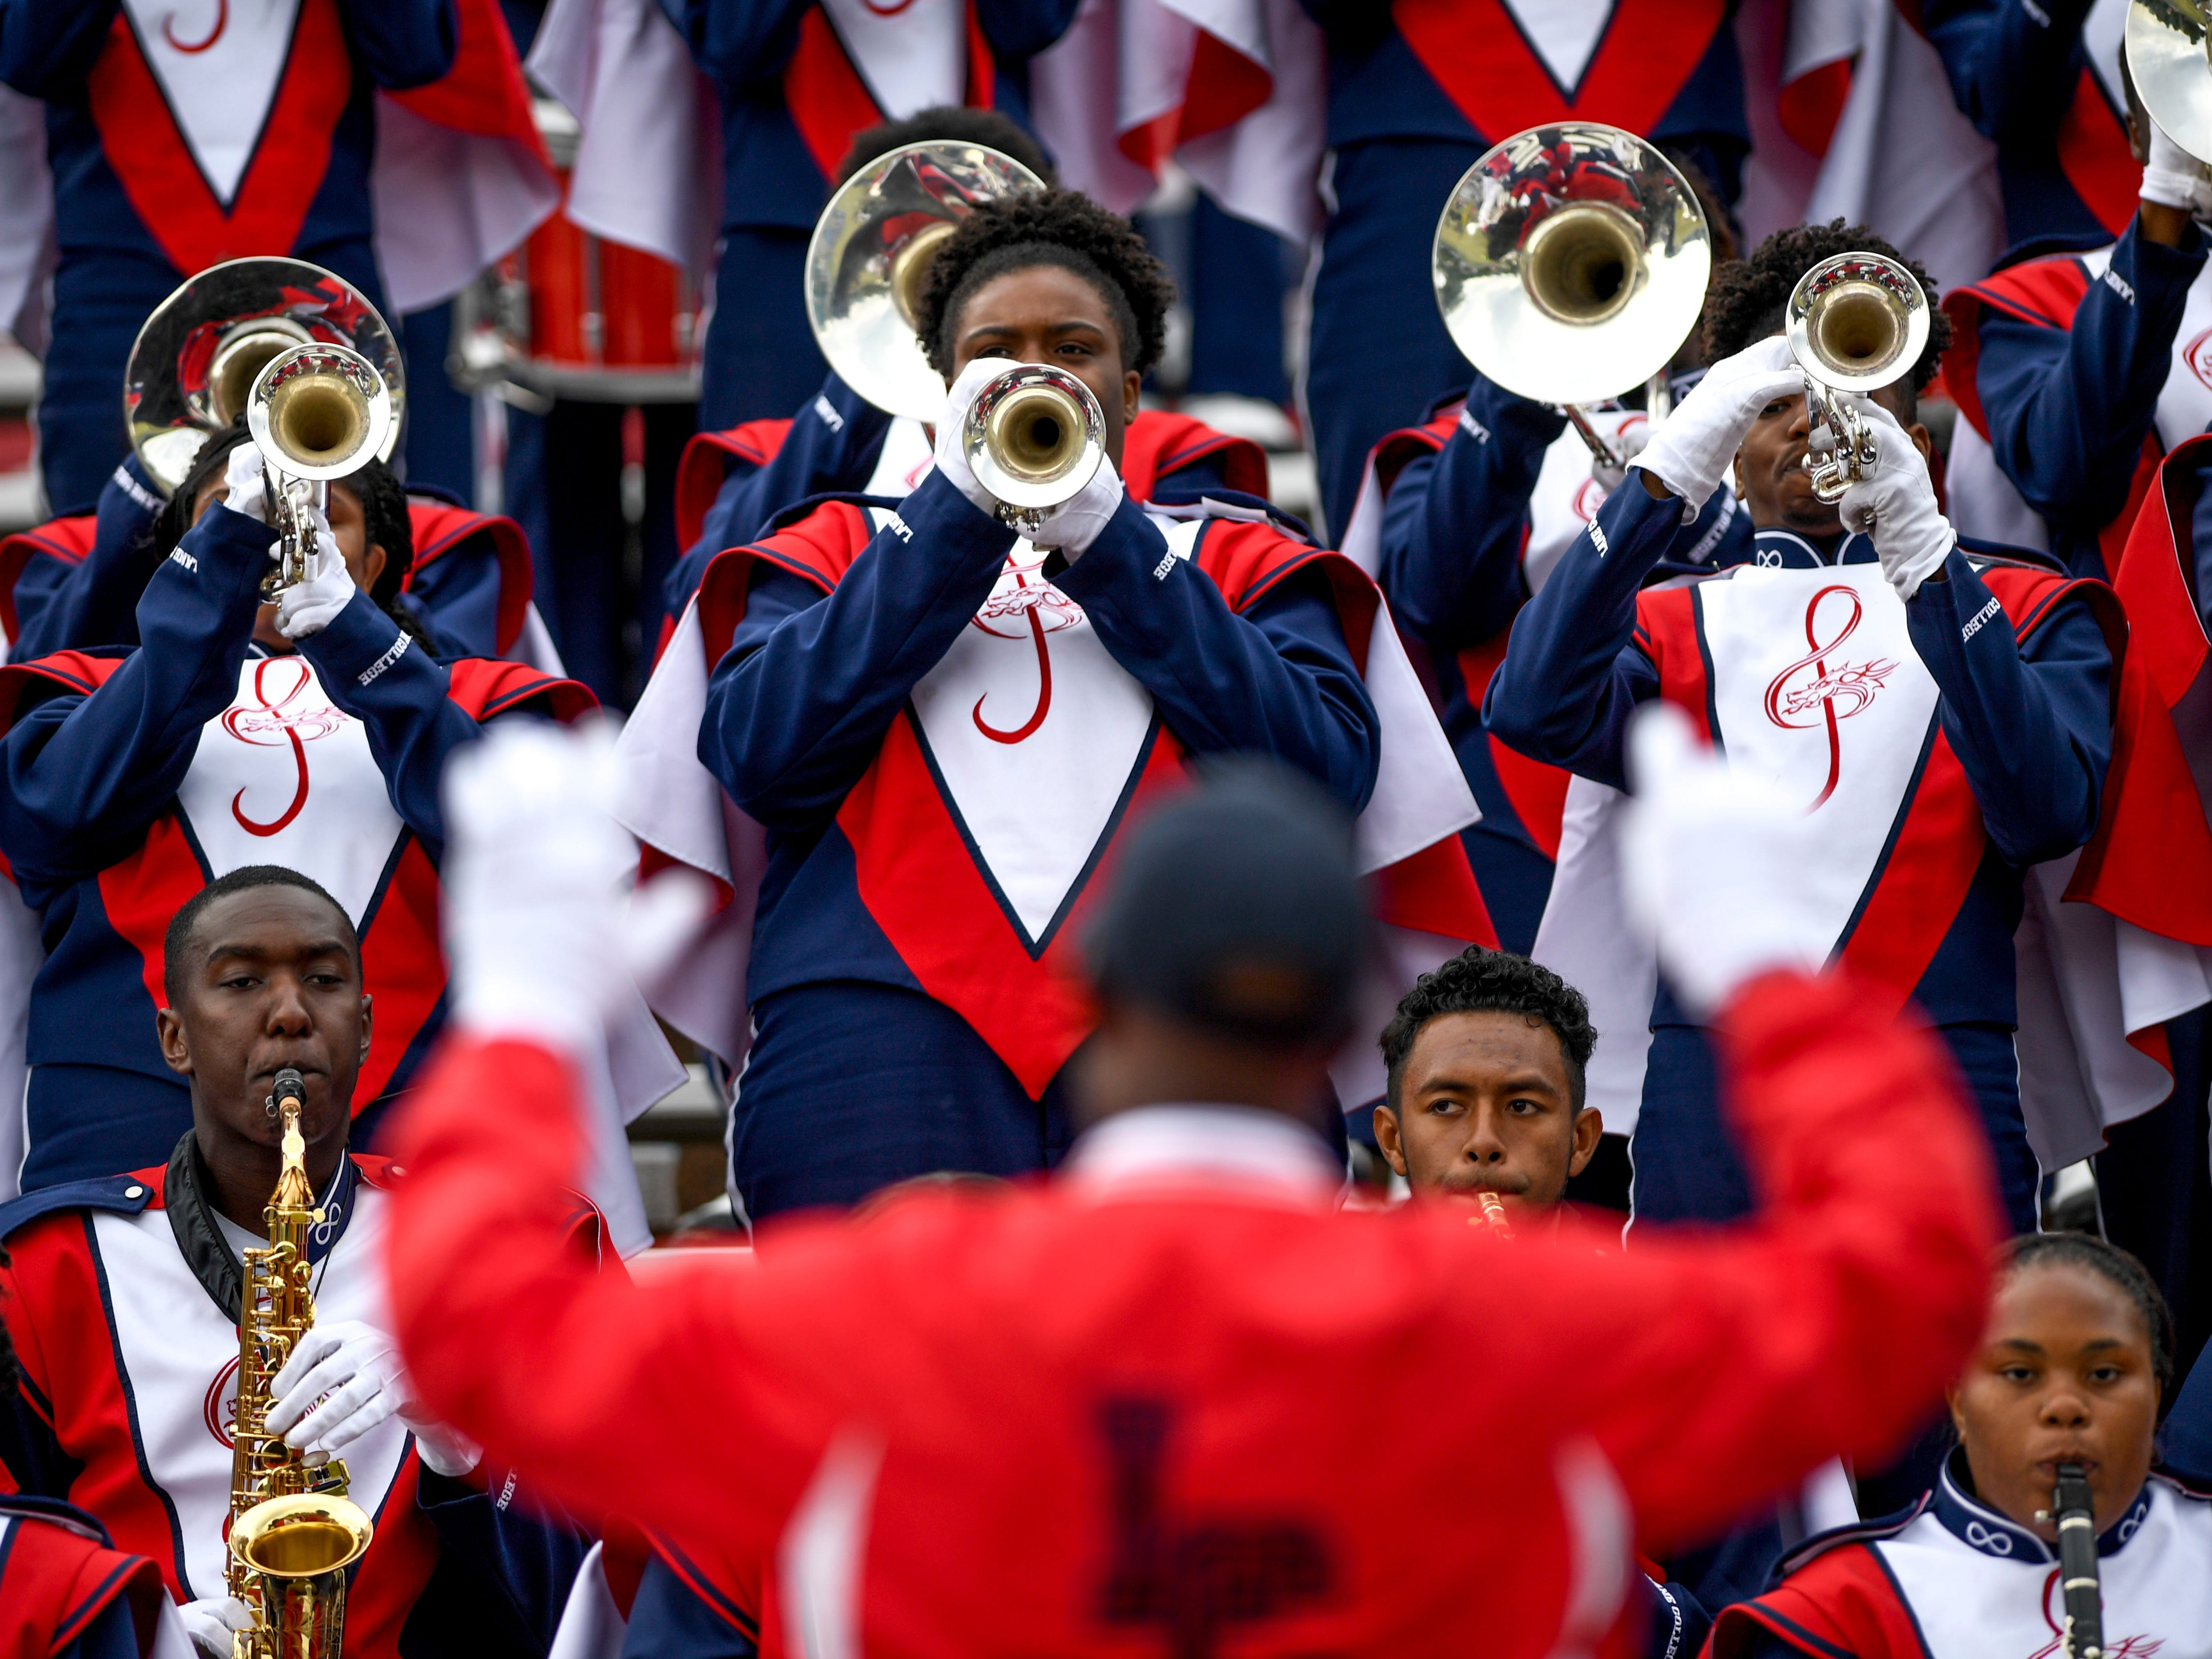 Lane College band members perform fight songs at the end of a game against Allen University at T.R. White Sportsplex in Jackson, Tenn., on Saturday, Oct. 13, 2018.